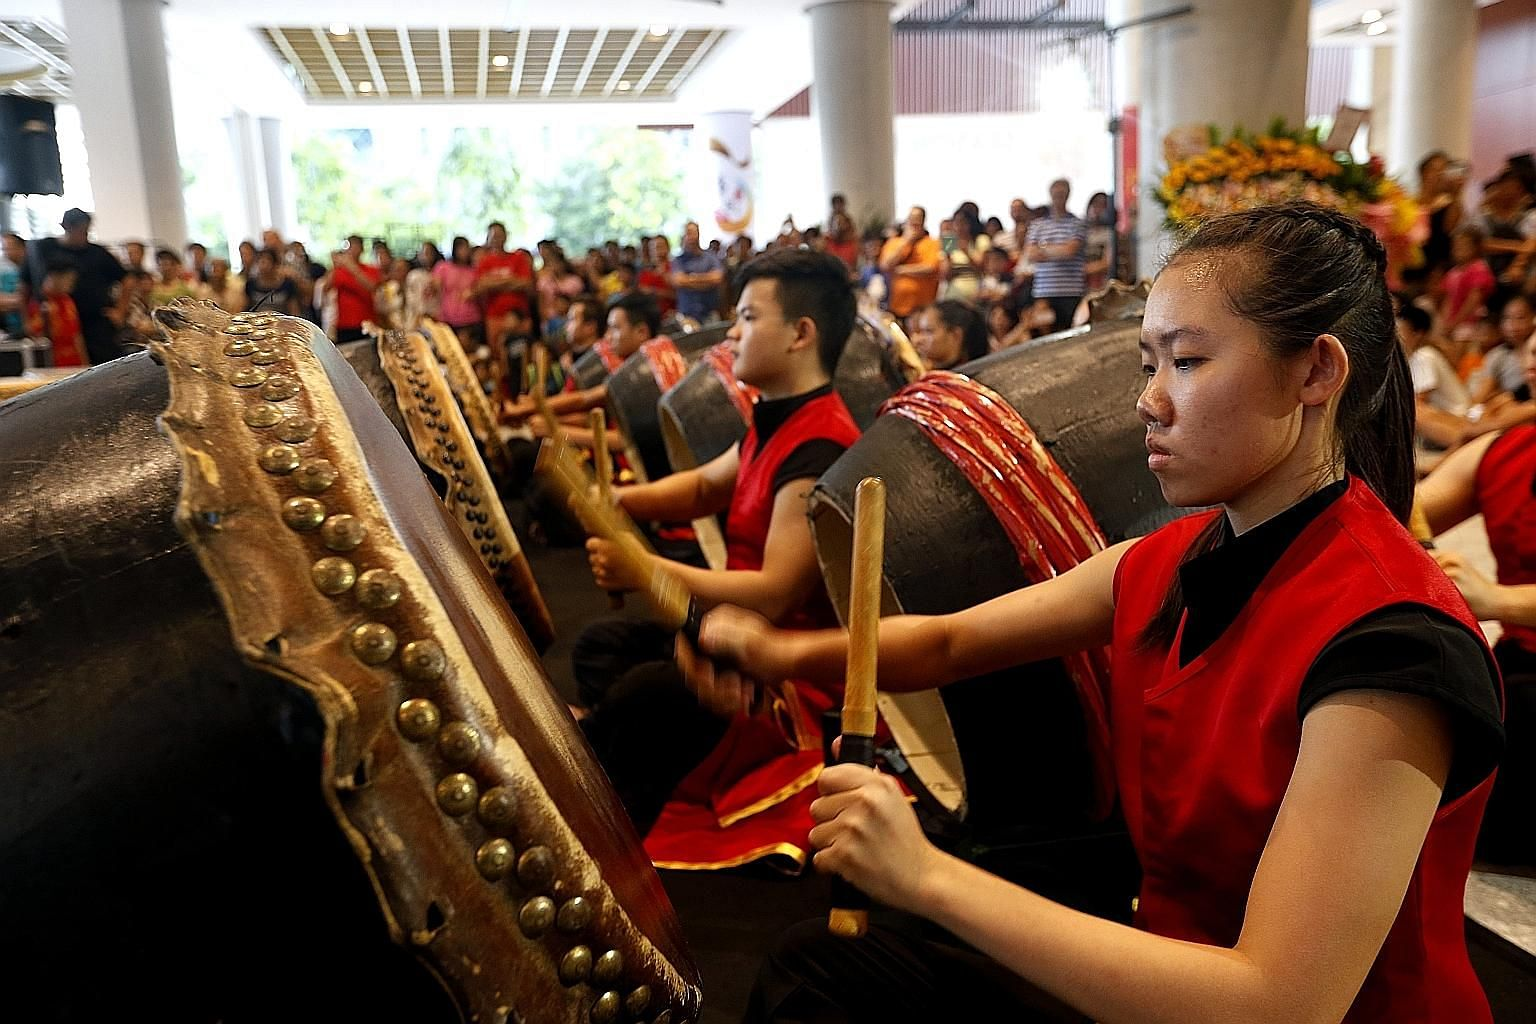 A spirited performance by the ZingO Festival Drum Group kicked off an eight-day cultural showcase at the Singapore Chinese Cultural Centre yesterday. The Singapore Chinese Cultural Contribution Award - which recognises those who have helped advance S